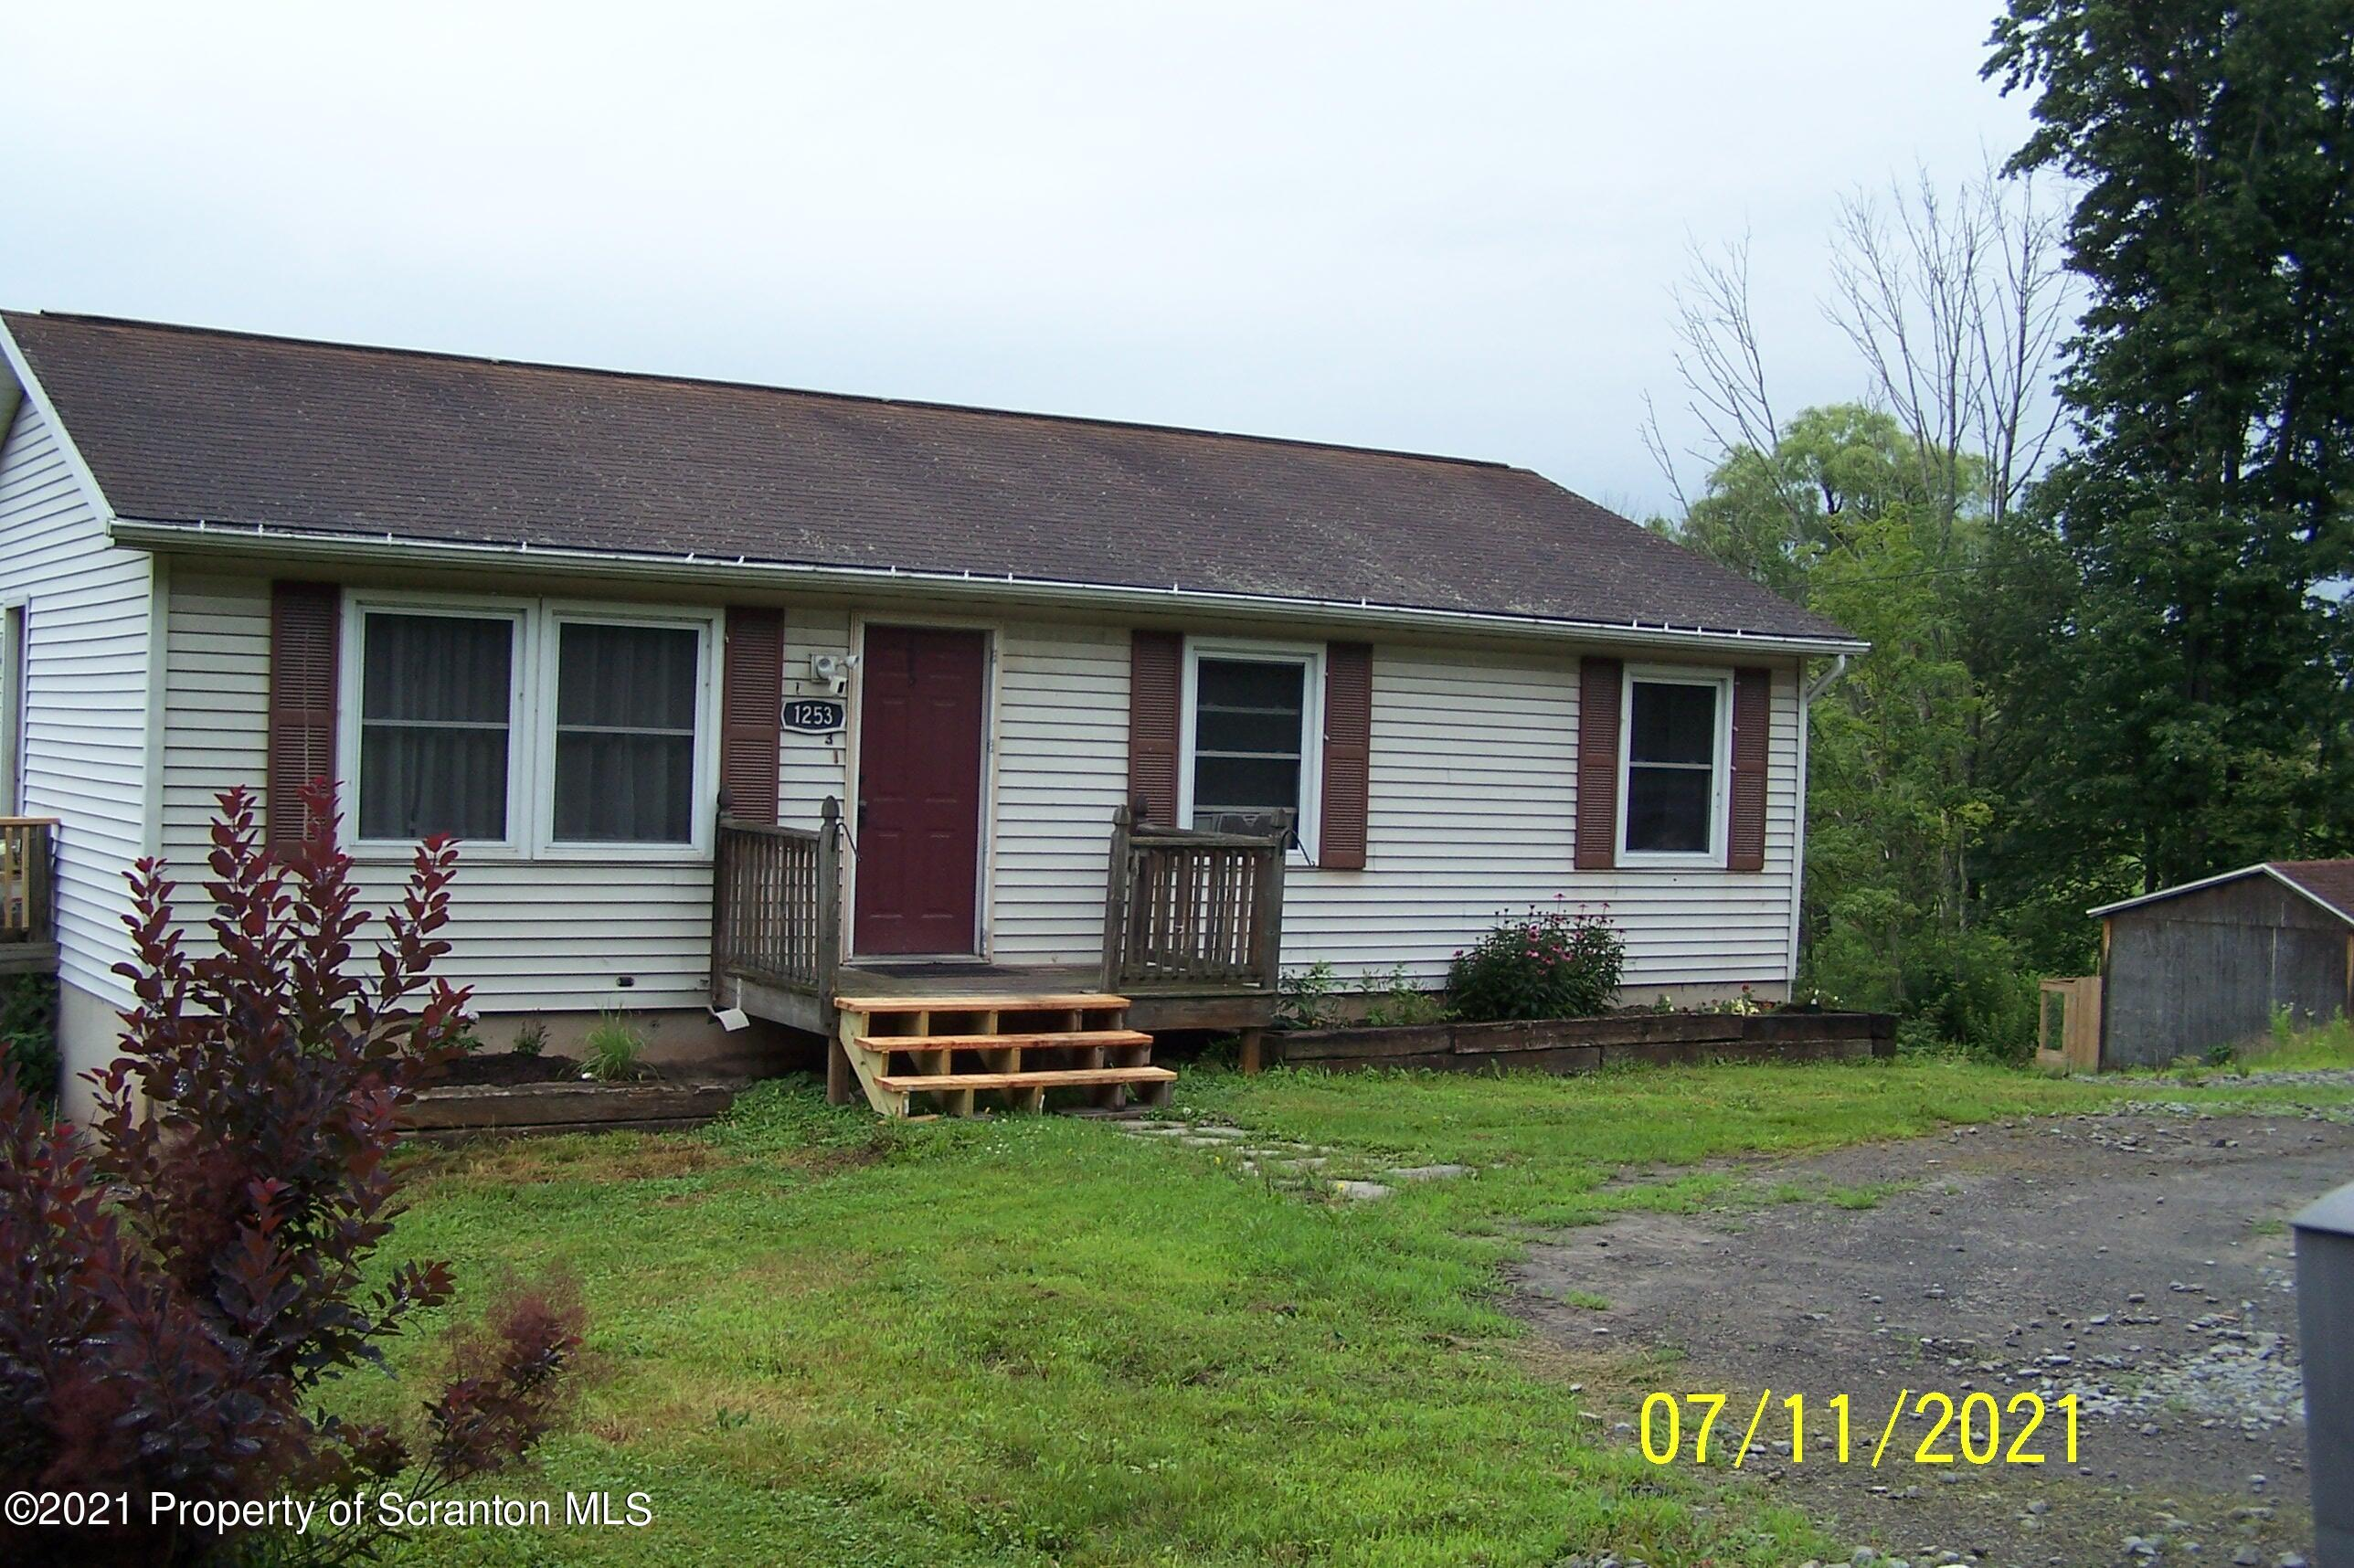 1253 State Route 29, Springville, Pennsylvania 18844, 3 Bedrooms Bedrooms, 5 Rooms Rooms,1 BathroomBathrooms,Single Family,For Sale,State Route 29,21-3023